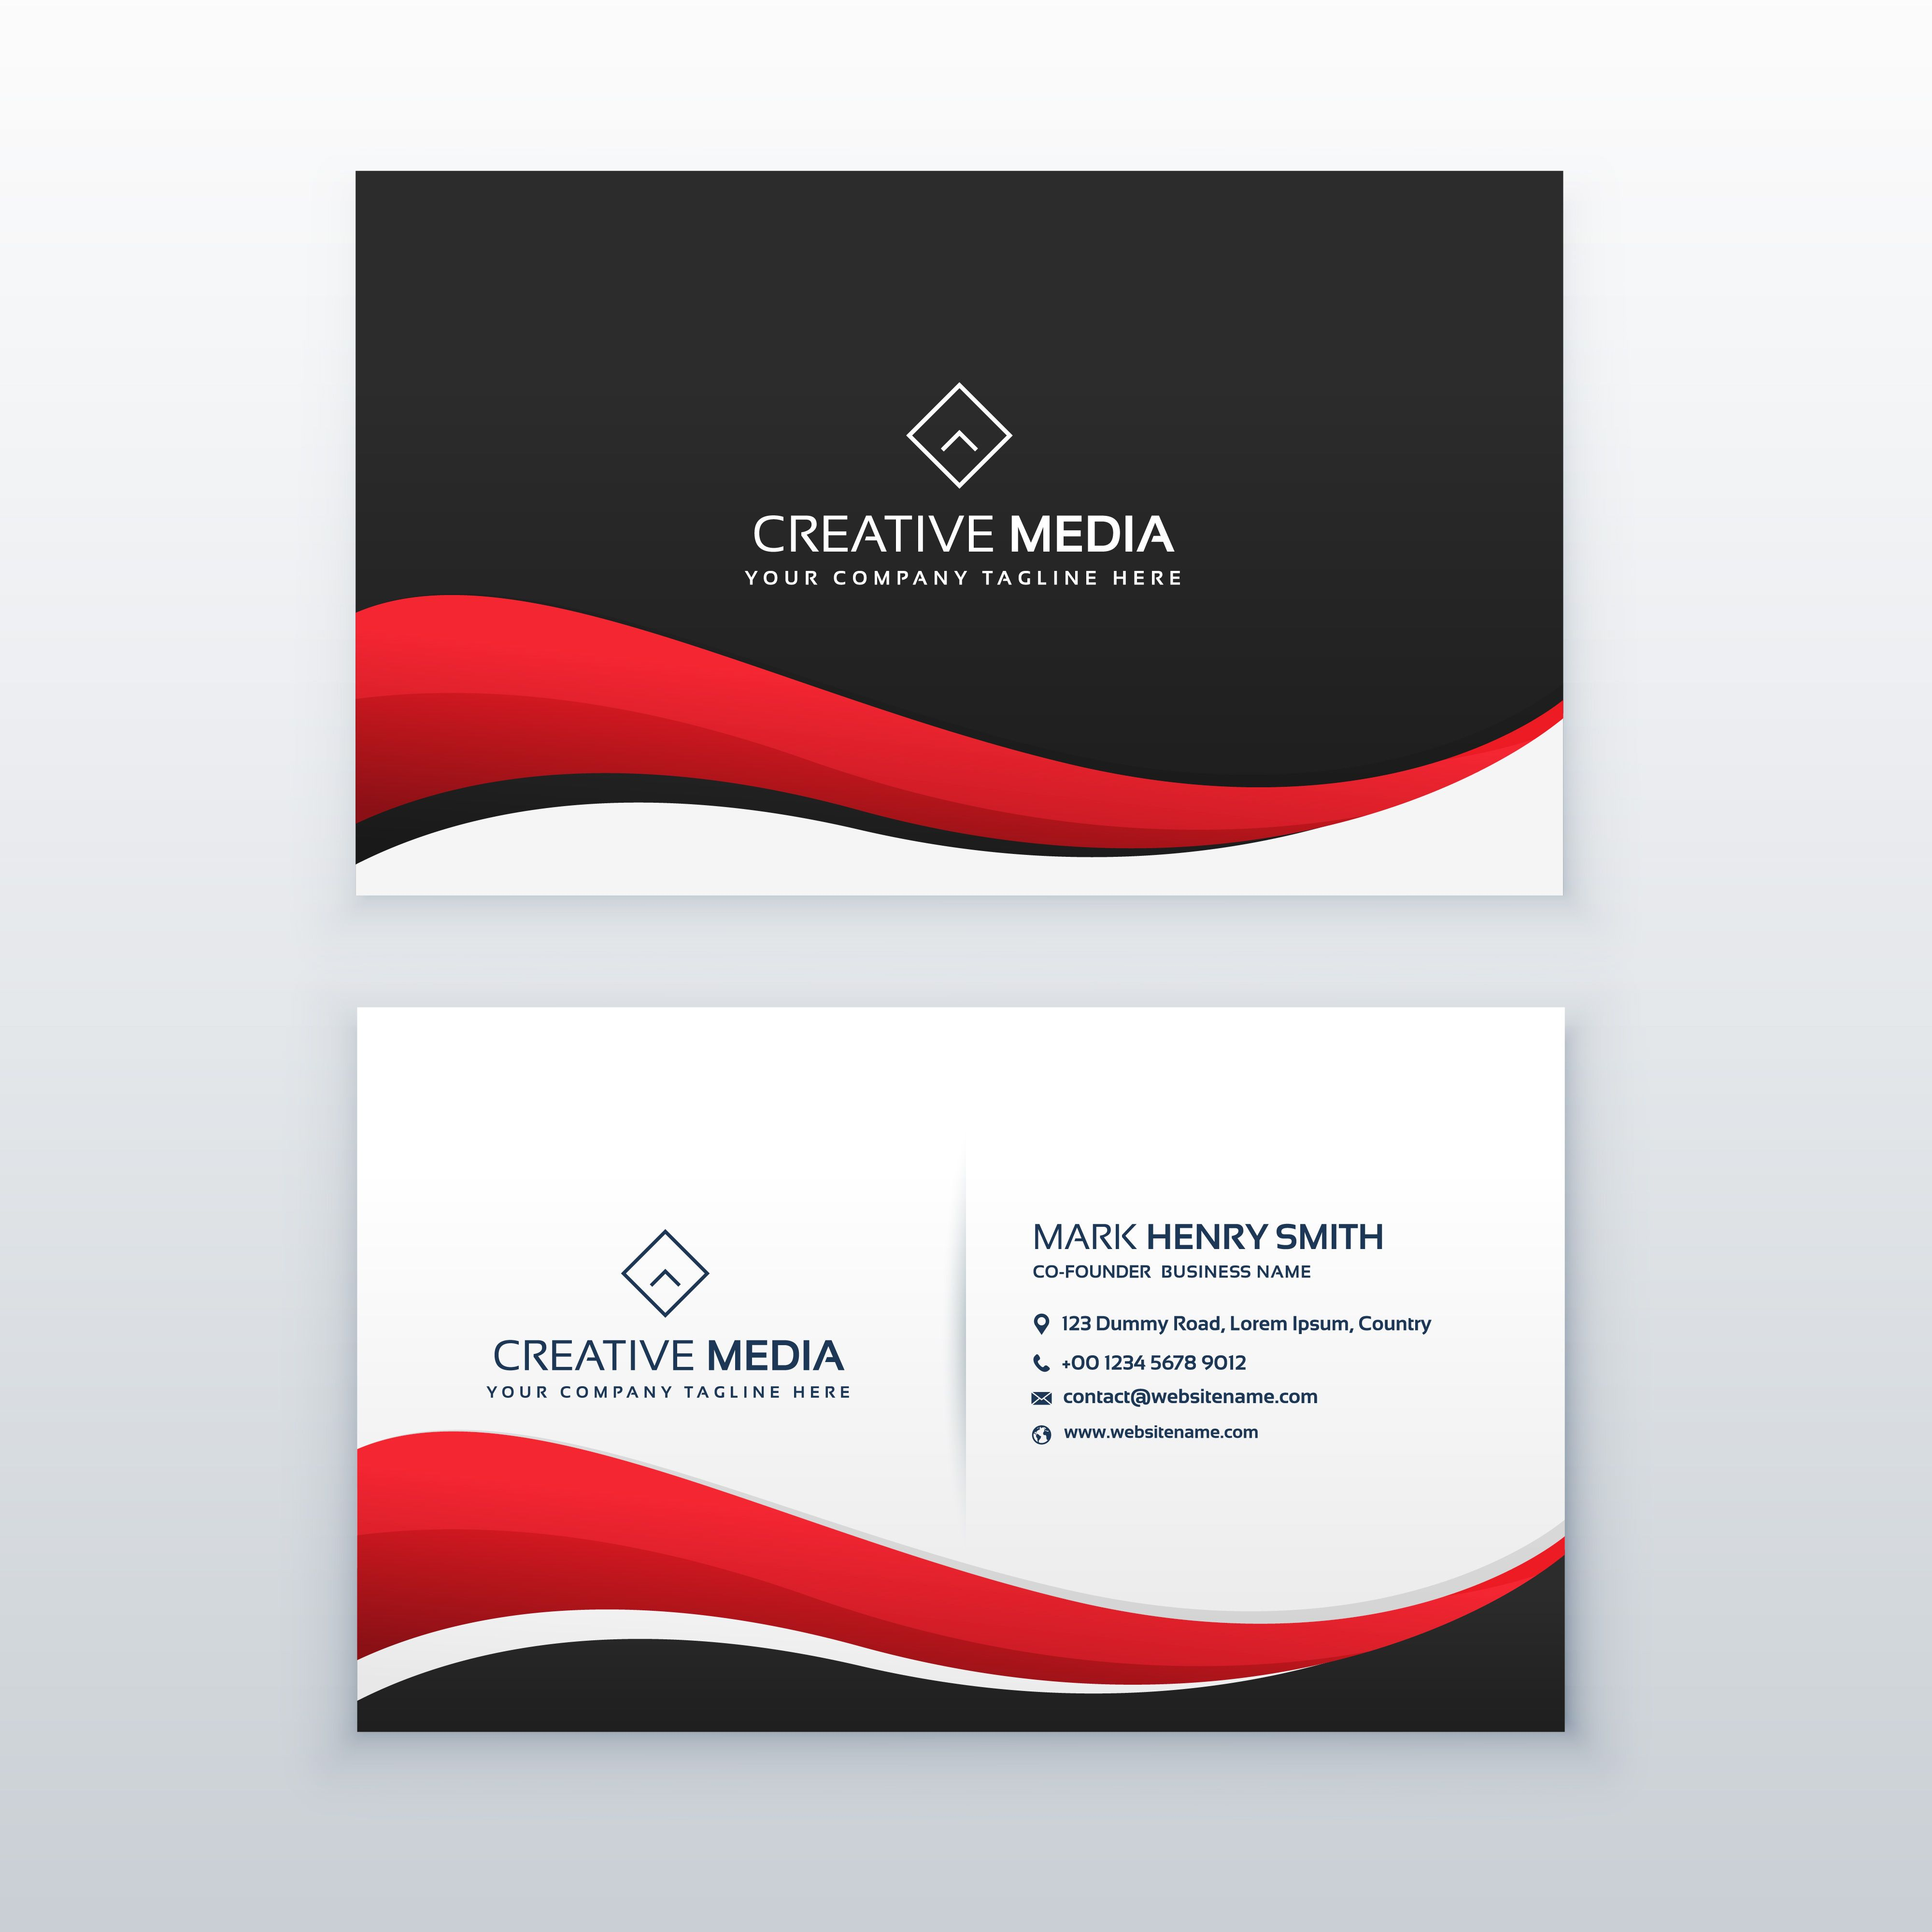 Pin By Tara On Helen Photo Business Cards Red Business Cards Clean Business Card Design